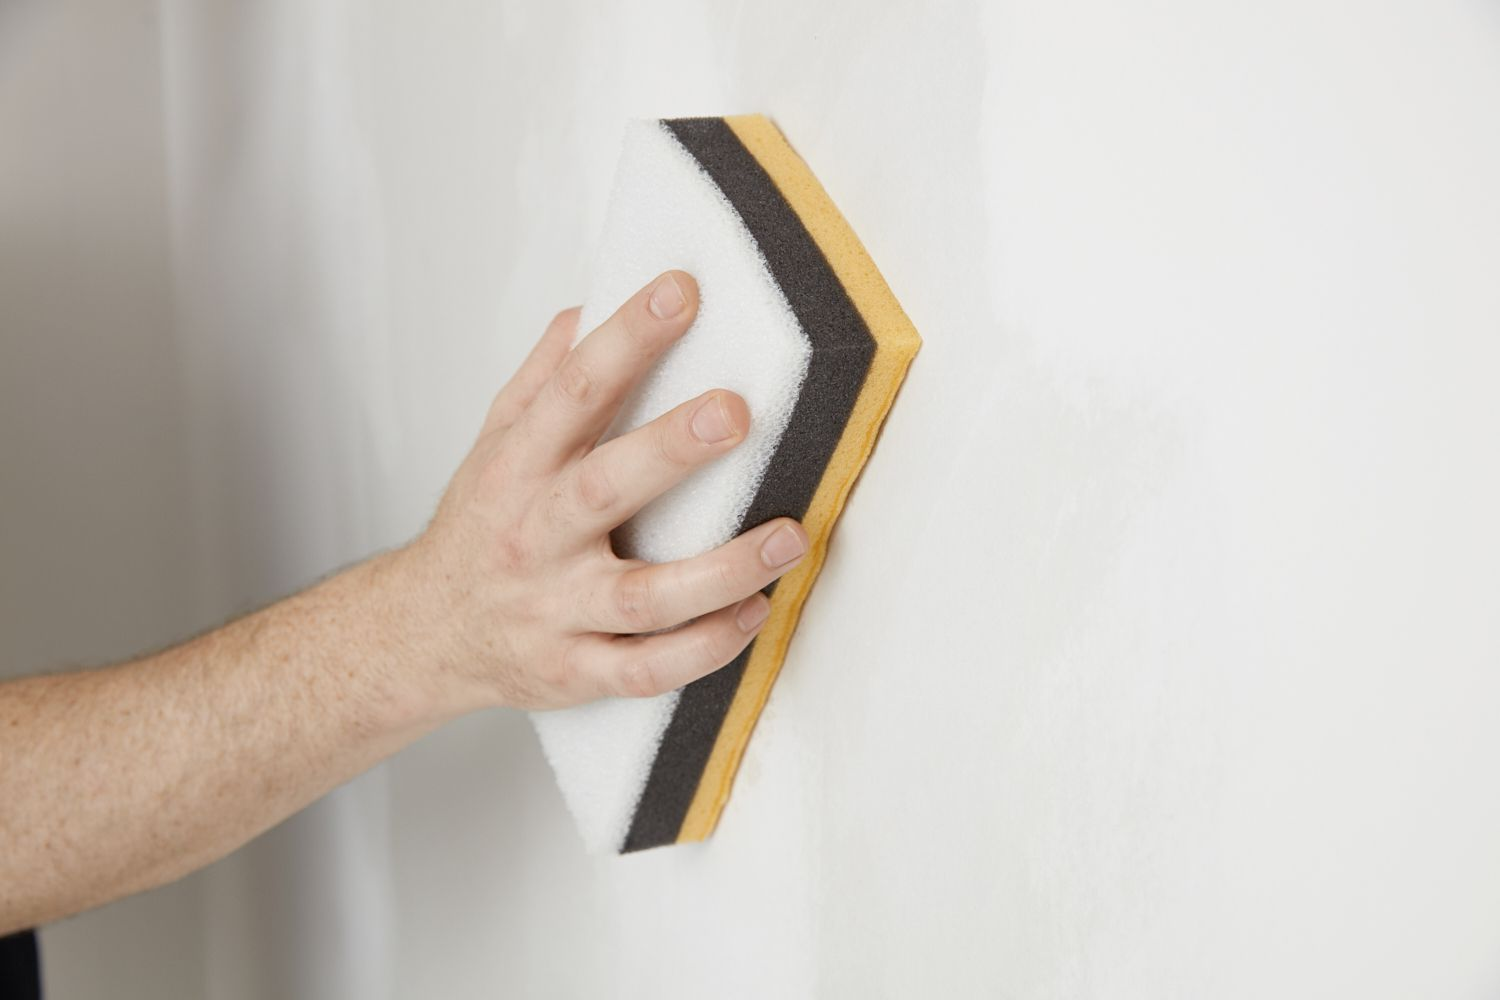 smoothing the drywall